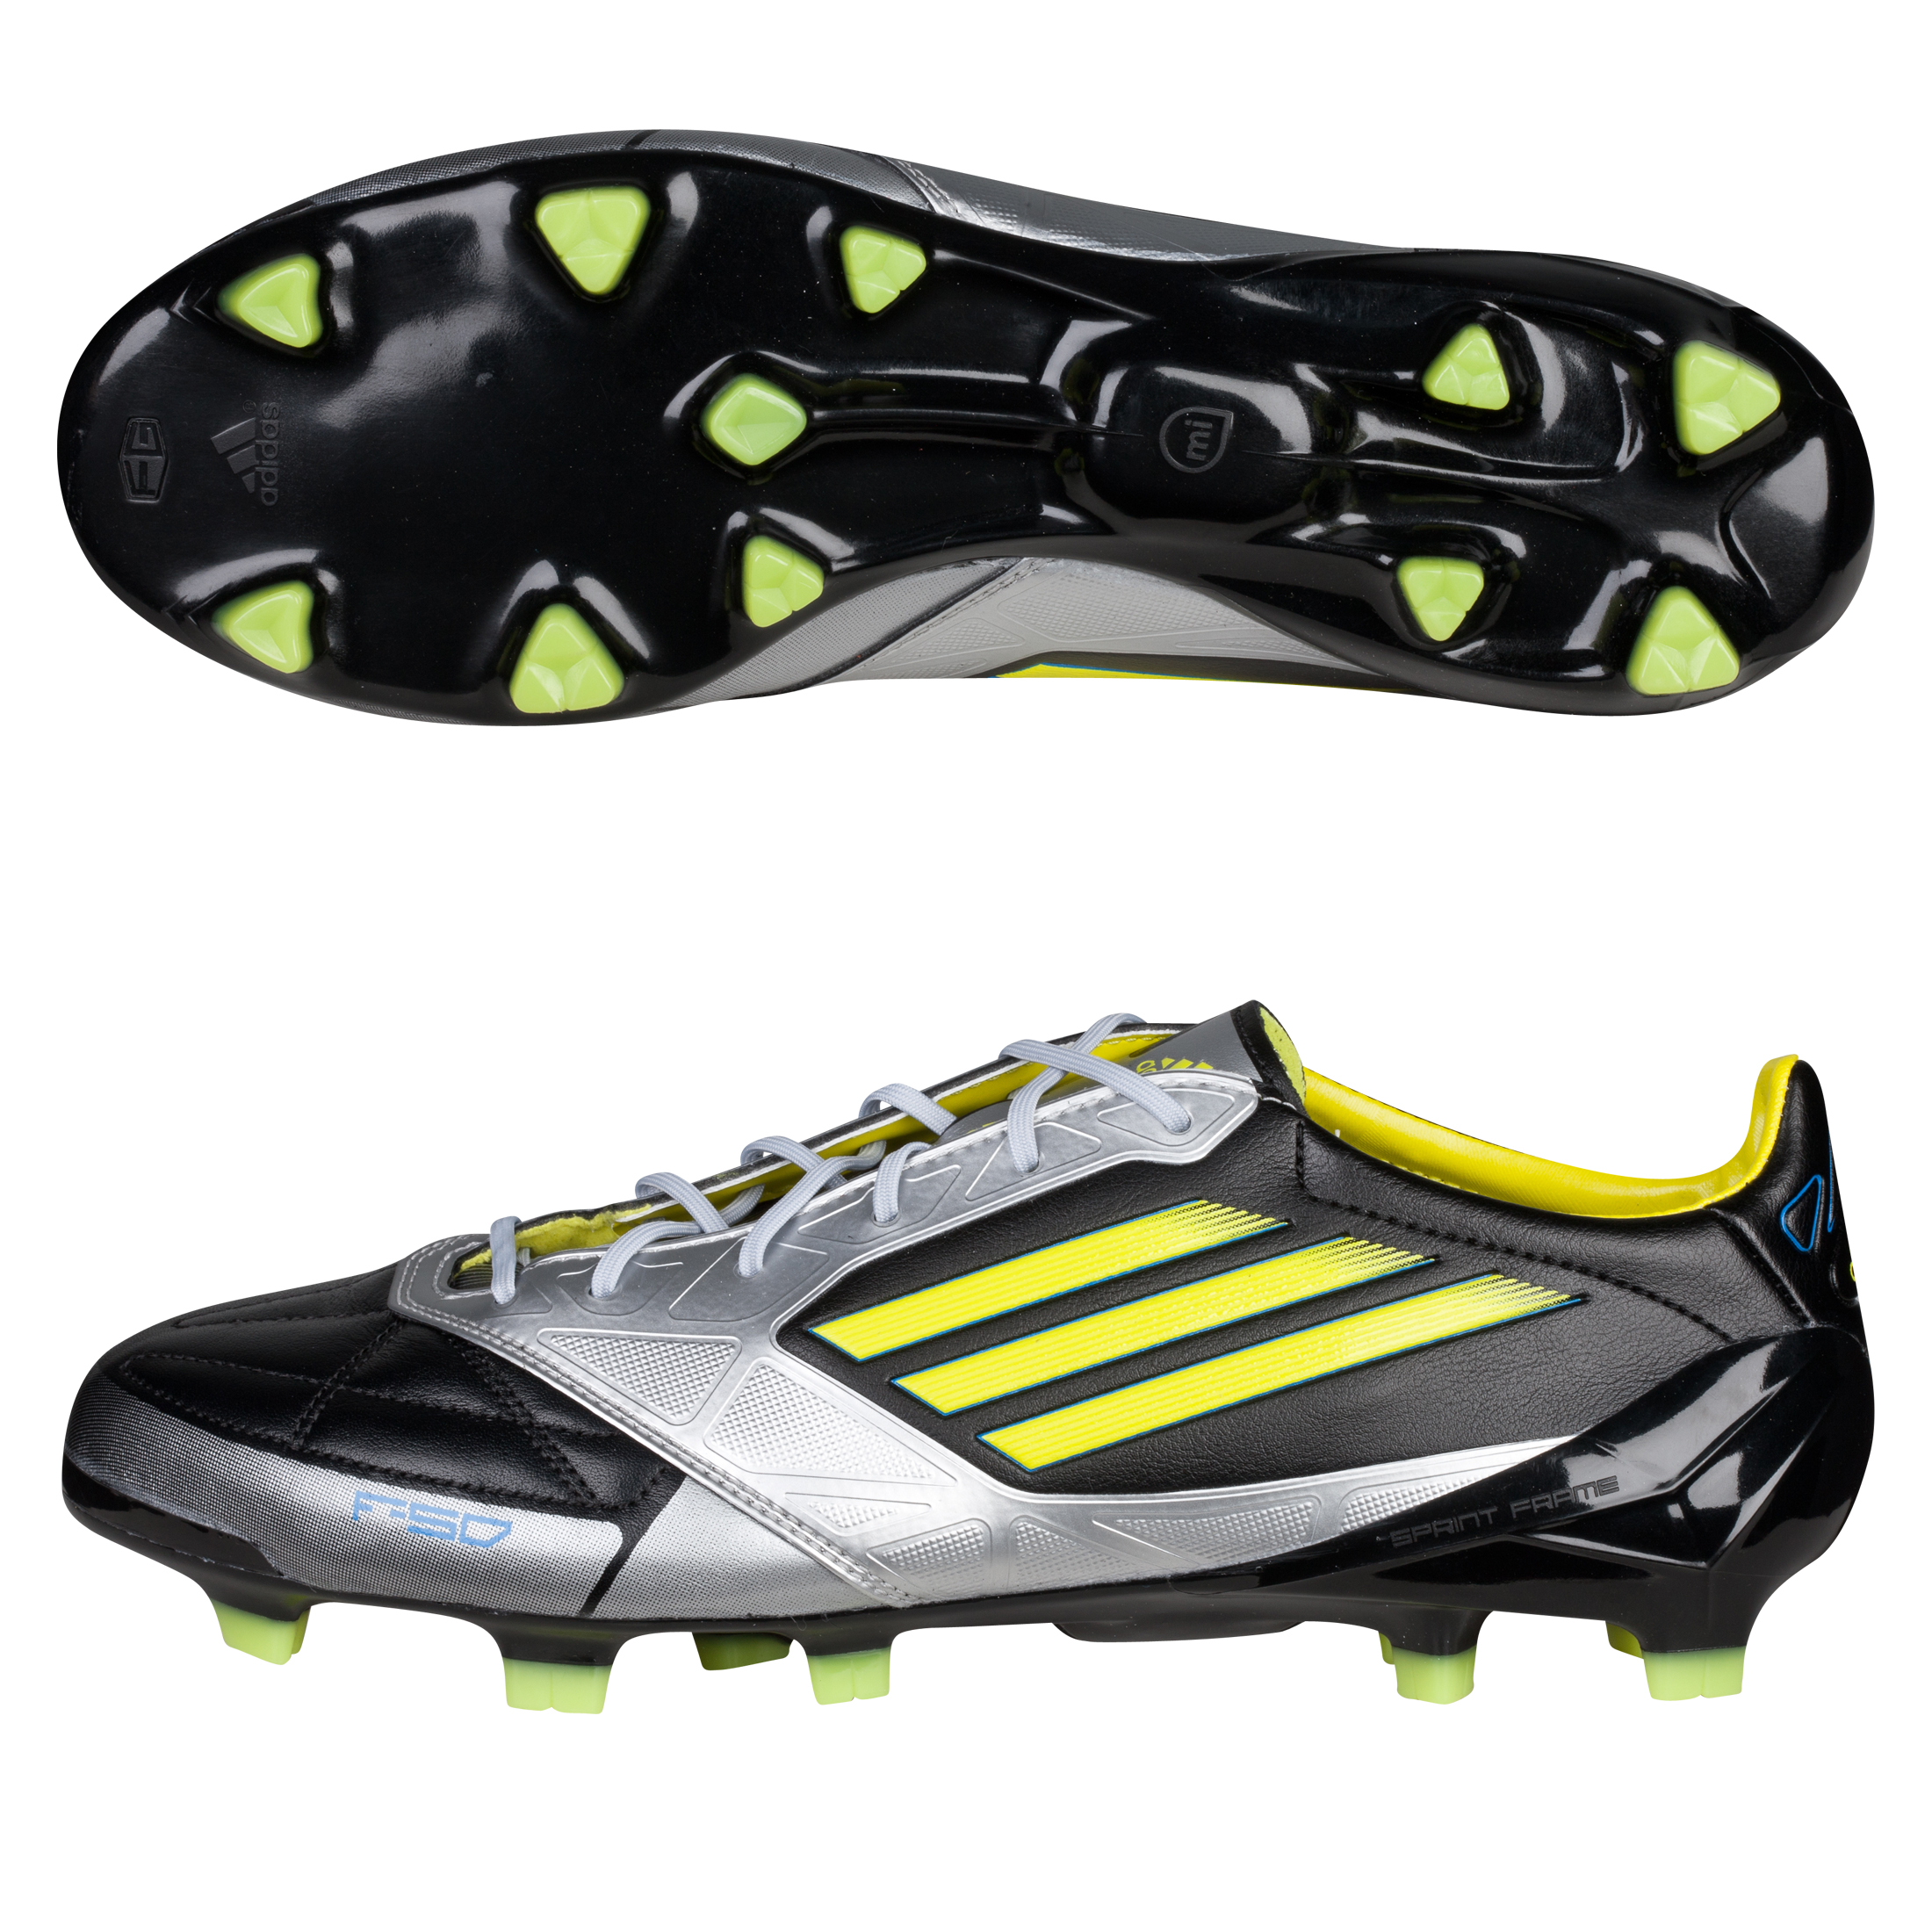 Adidas F50 Adizero TRX Firm Ground Leather miCoach Bundle - Black/Lab Lime/Metallic Silver